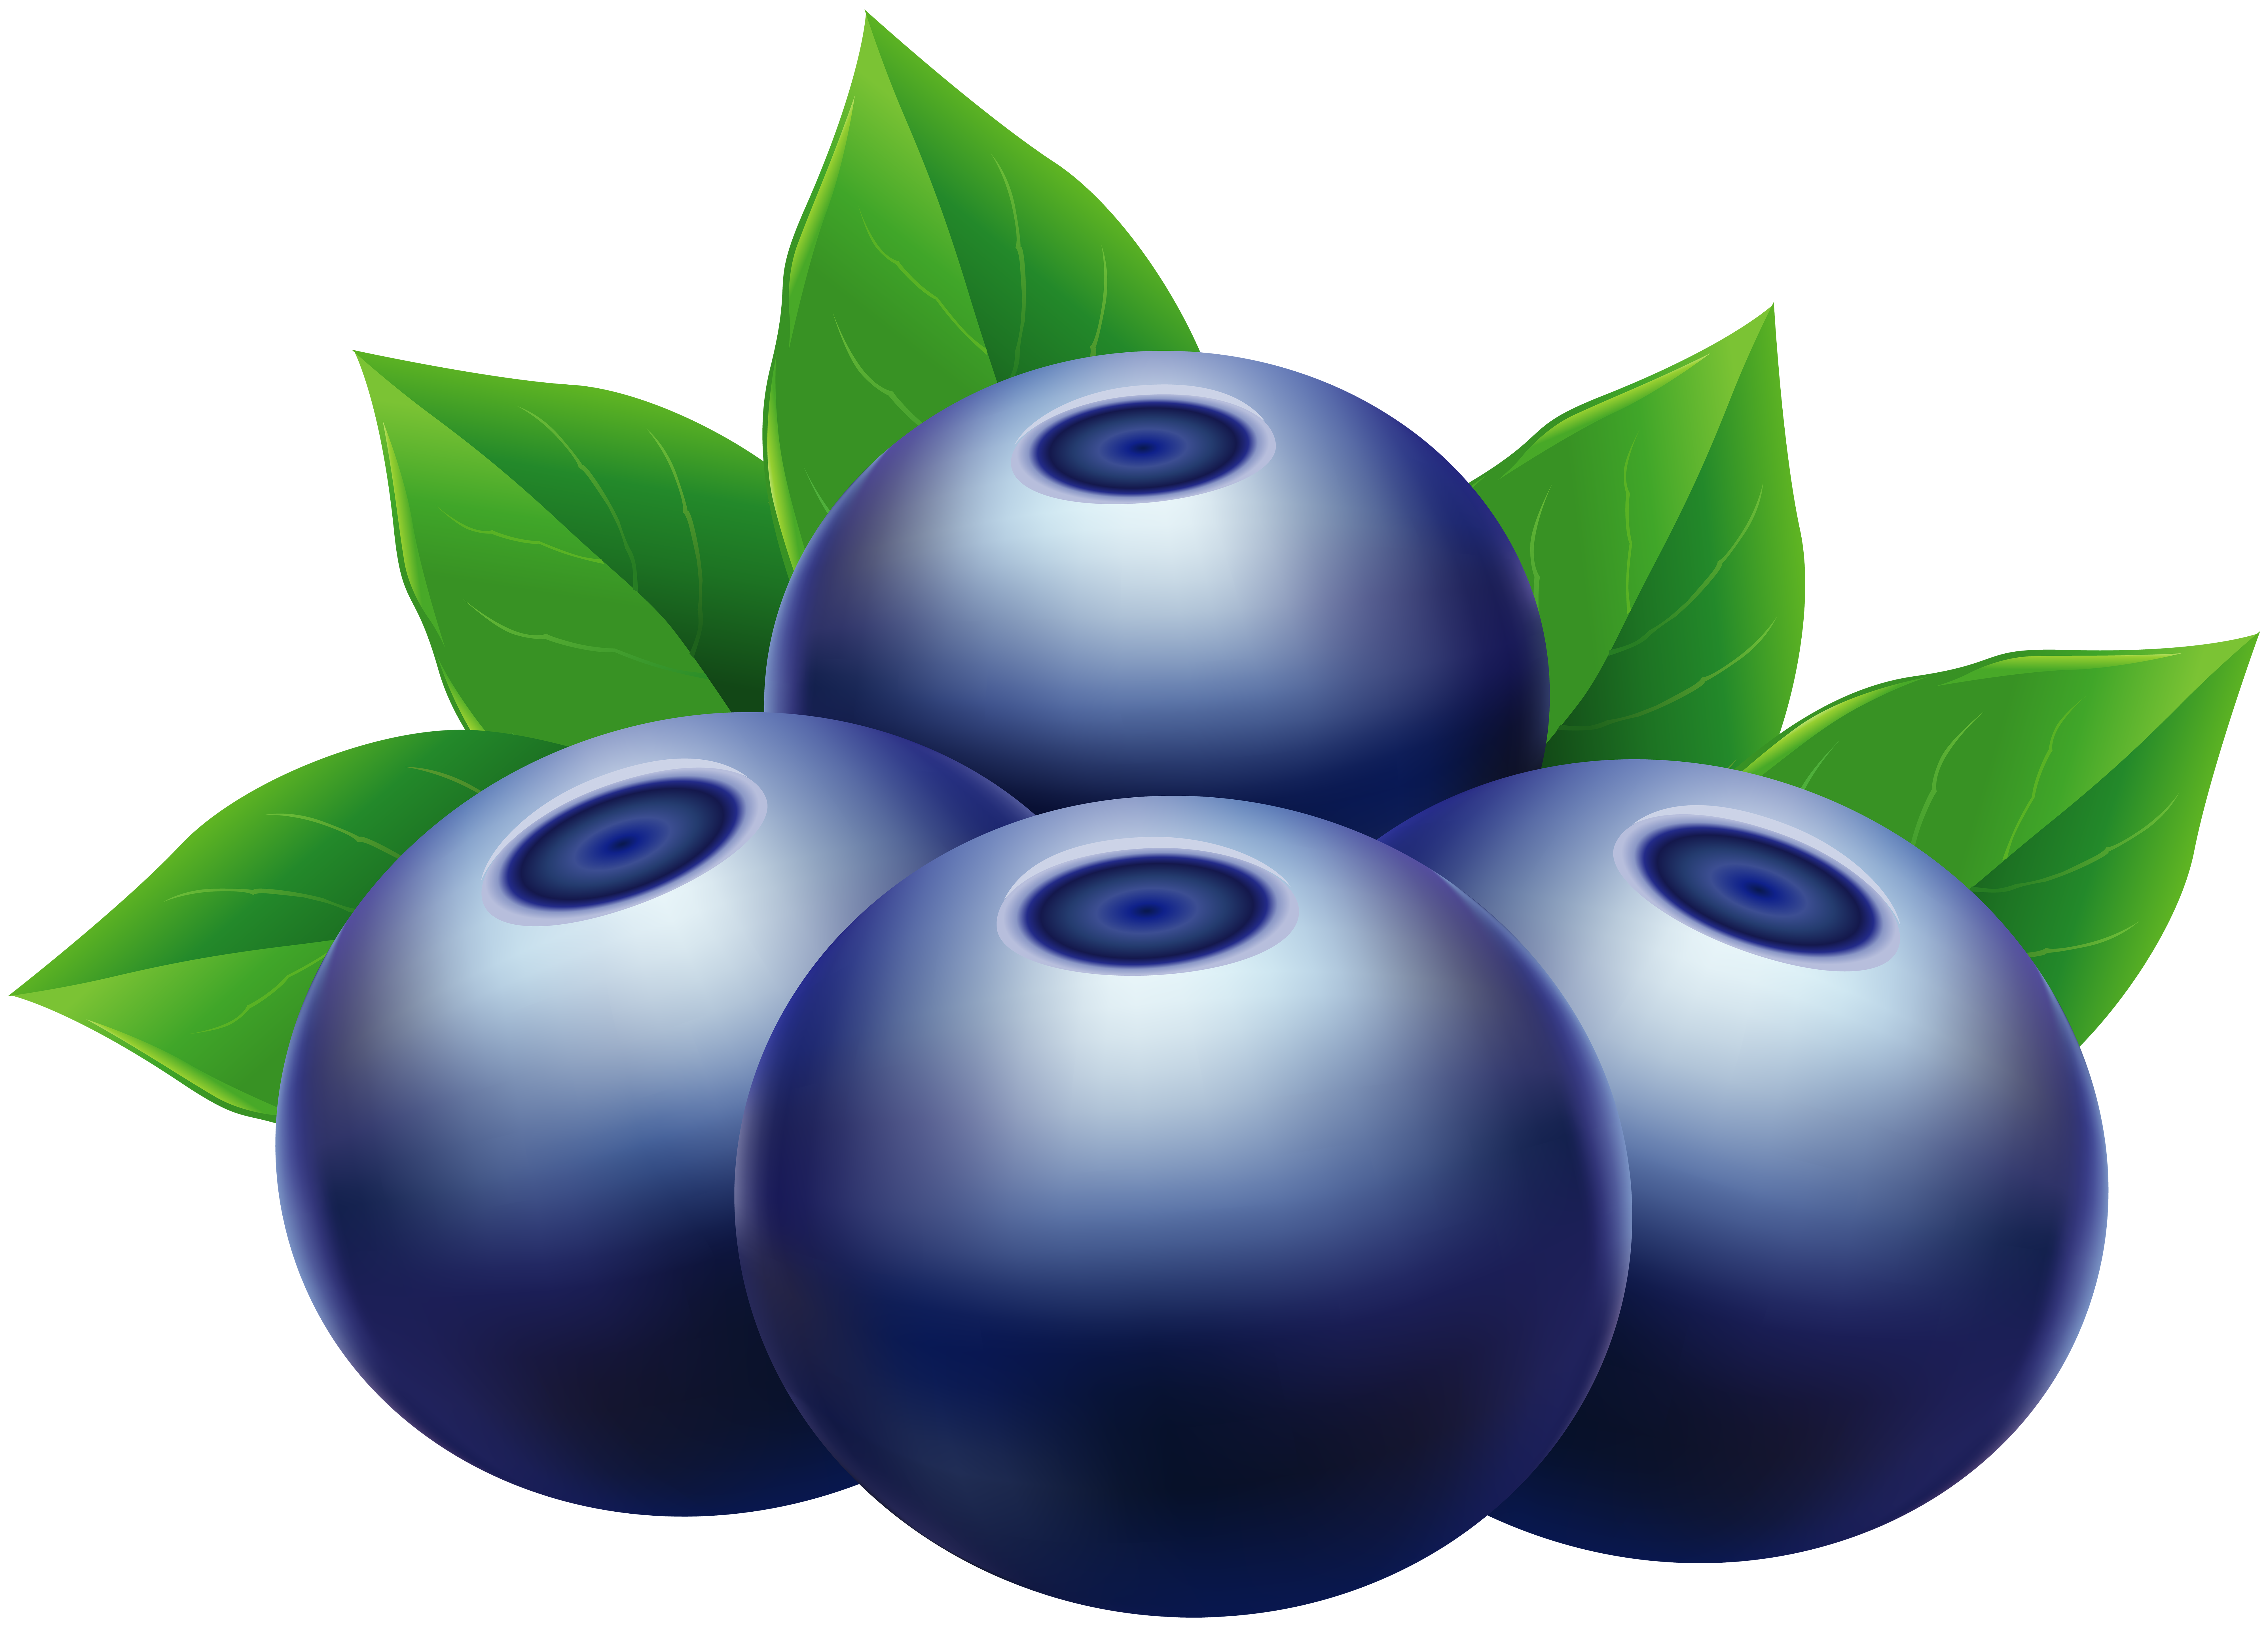 Blueberry images clipart graphic free download Blueberries PNG Clip Art Image   Gallery Yopriceville - High ... graphic free download